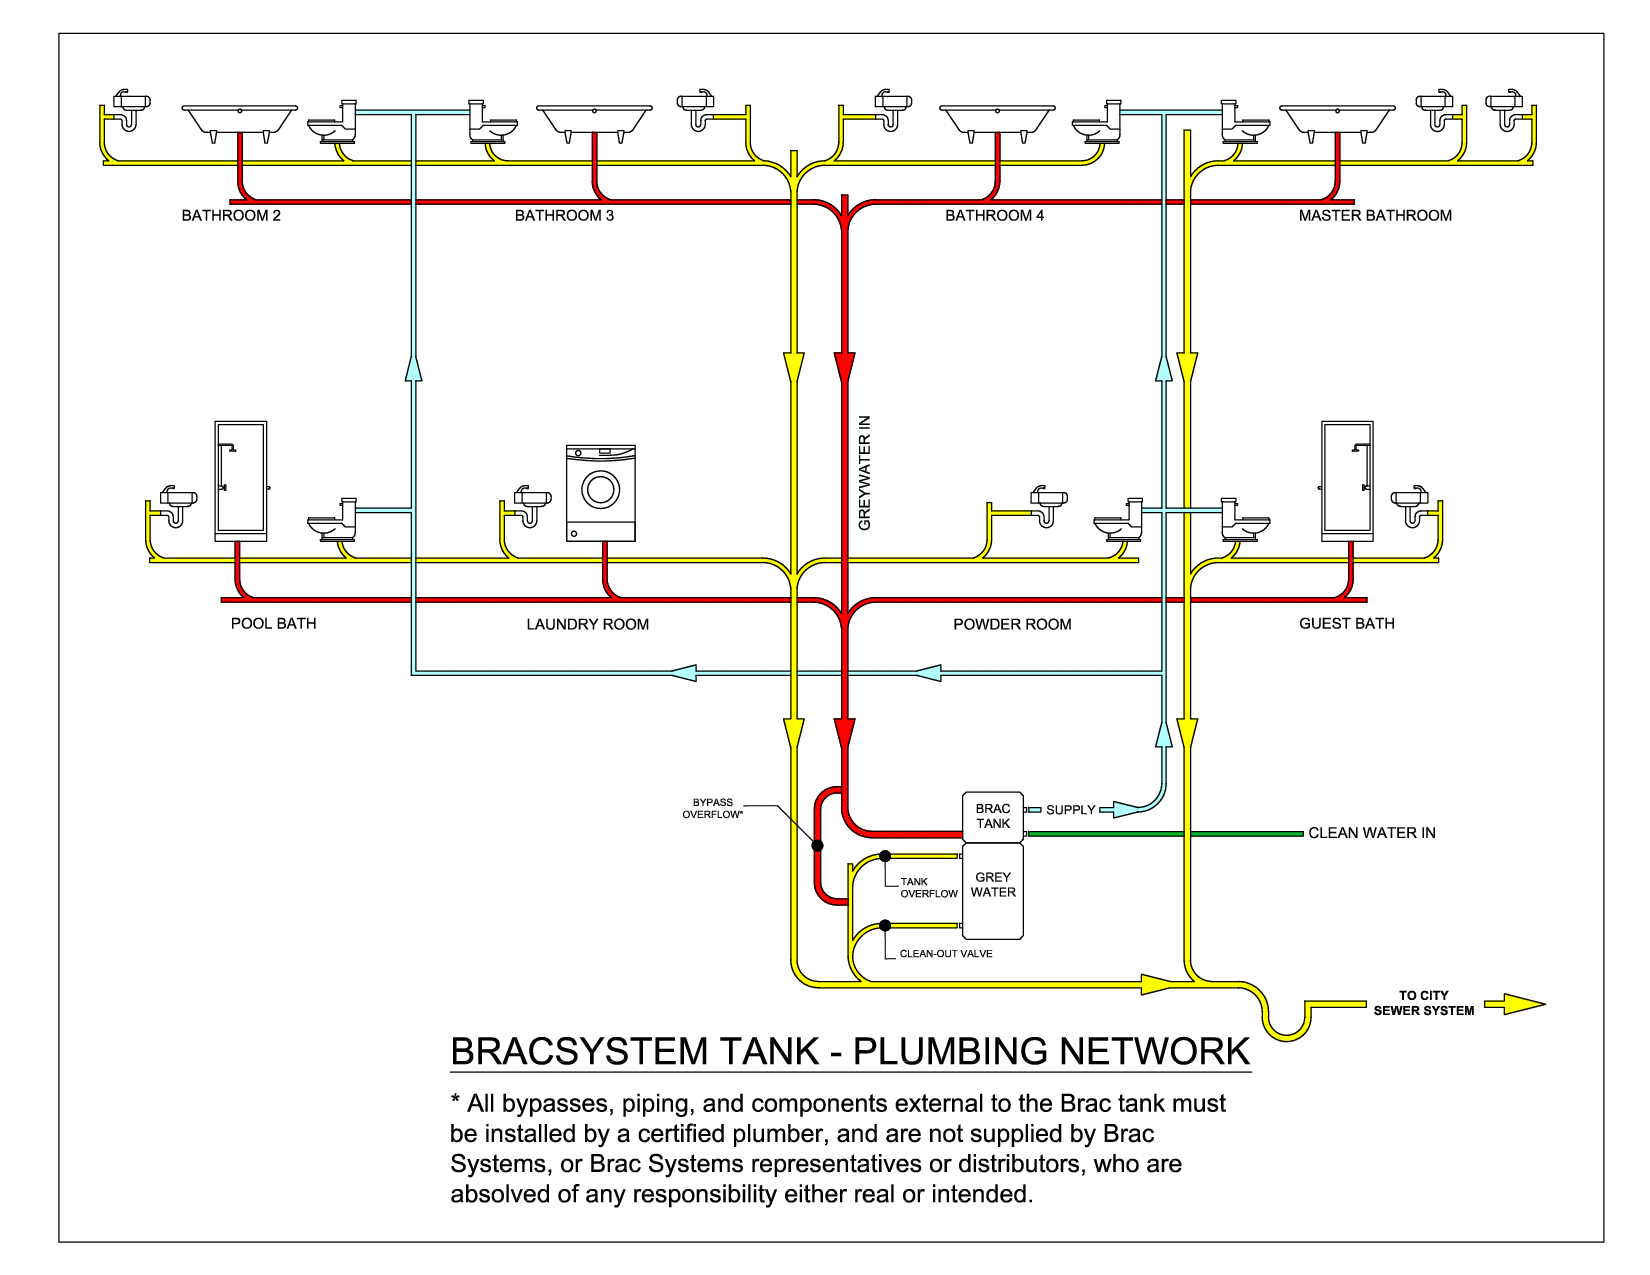 6a10db7de24186000f000aa7eded67b2 mobile home plumbing systems plumbing network diagram pdf plumbing diagram for bathtub at edmiracle.co